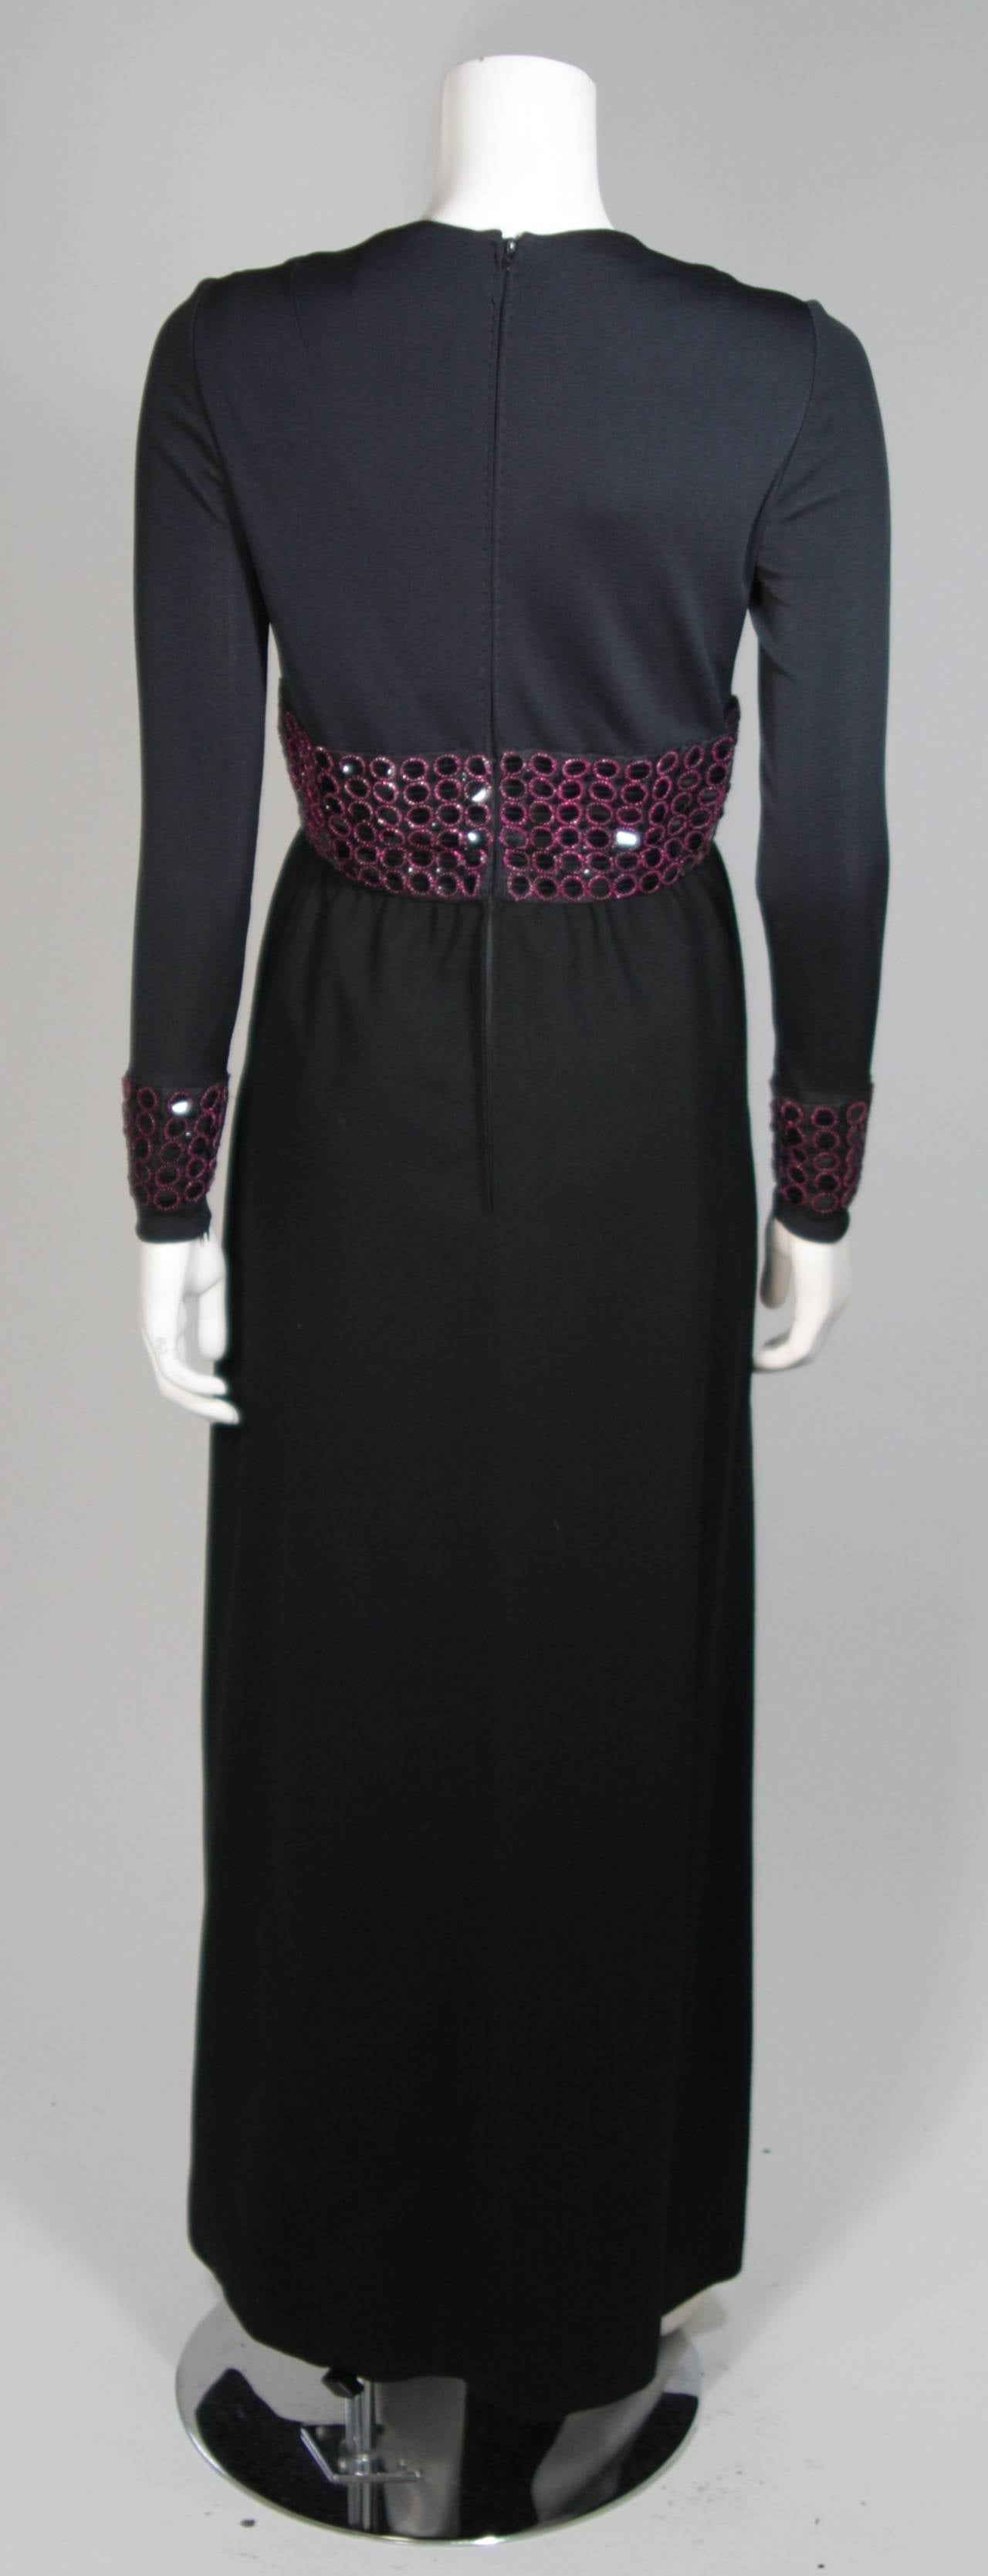 Chester Weinberg Black Long Sleeve Gown With Beaded Waist Size S M 8